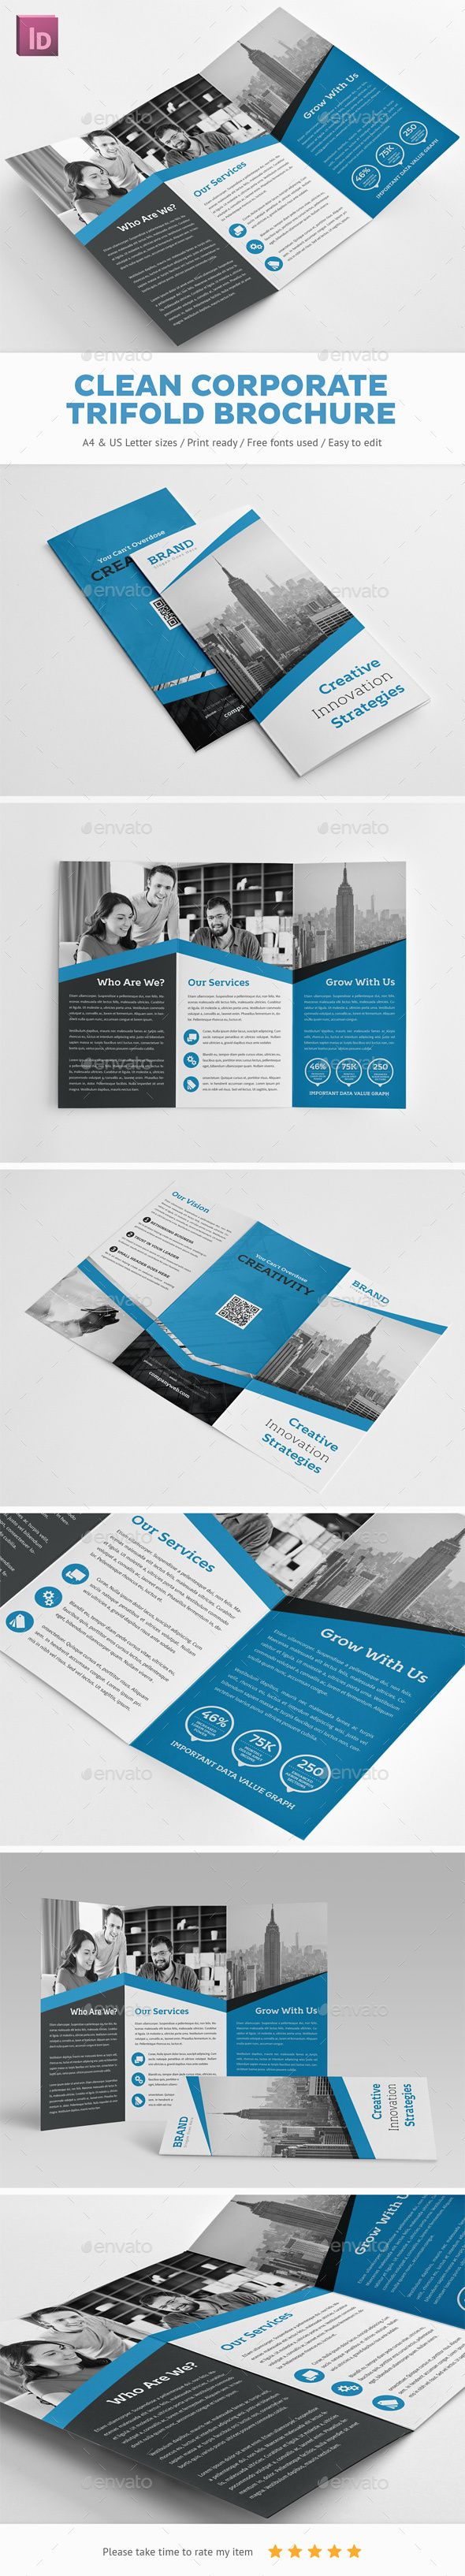 Clean Corporate Trifold Brochure Template InDesign INDD #design Download: http://graphicriver.net/item/clean-corporate-trifold-brochure/14523224?ref=ksioks